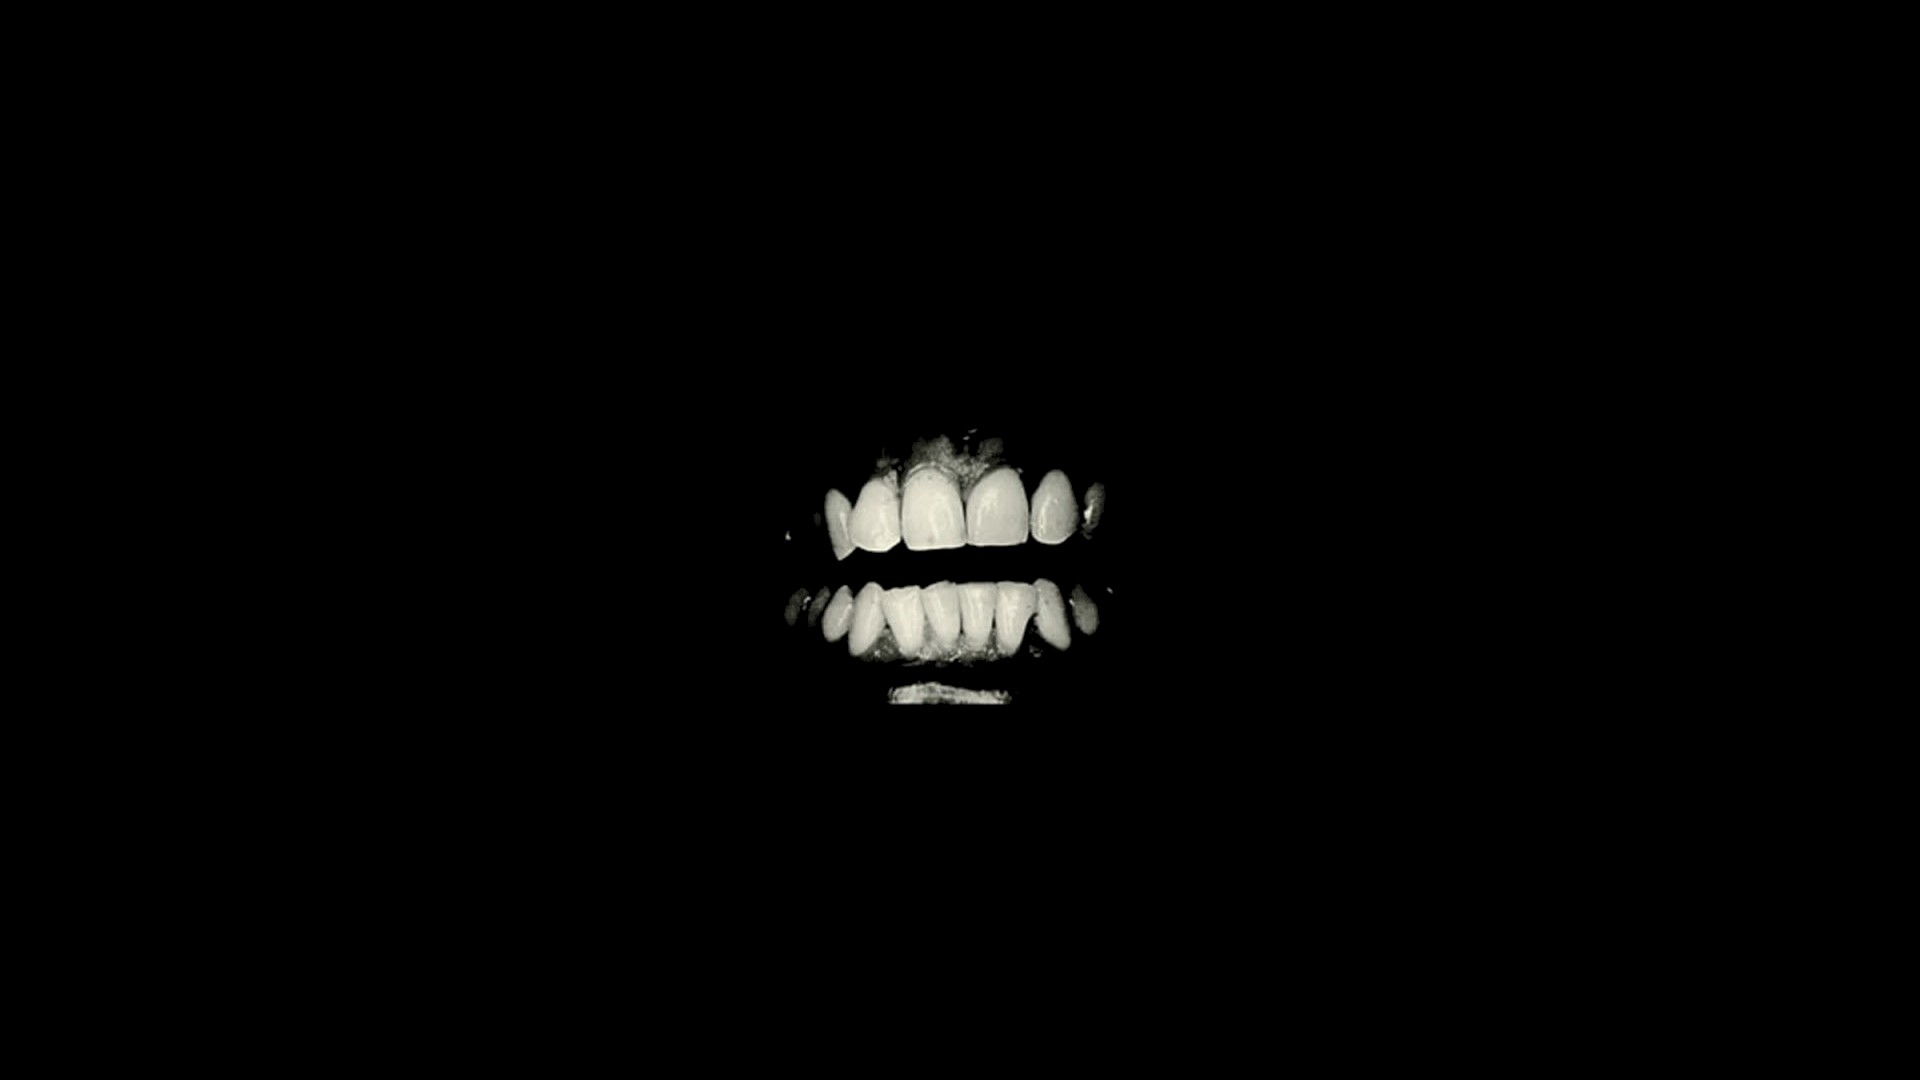 Teeth black background simple hd wallpapers desktop - Black and white hd wallpapers black background ...